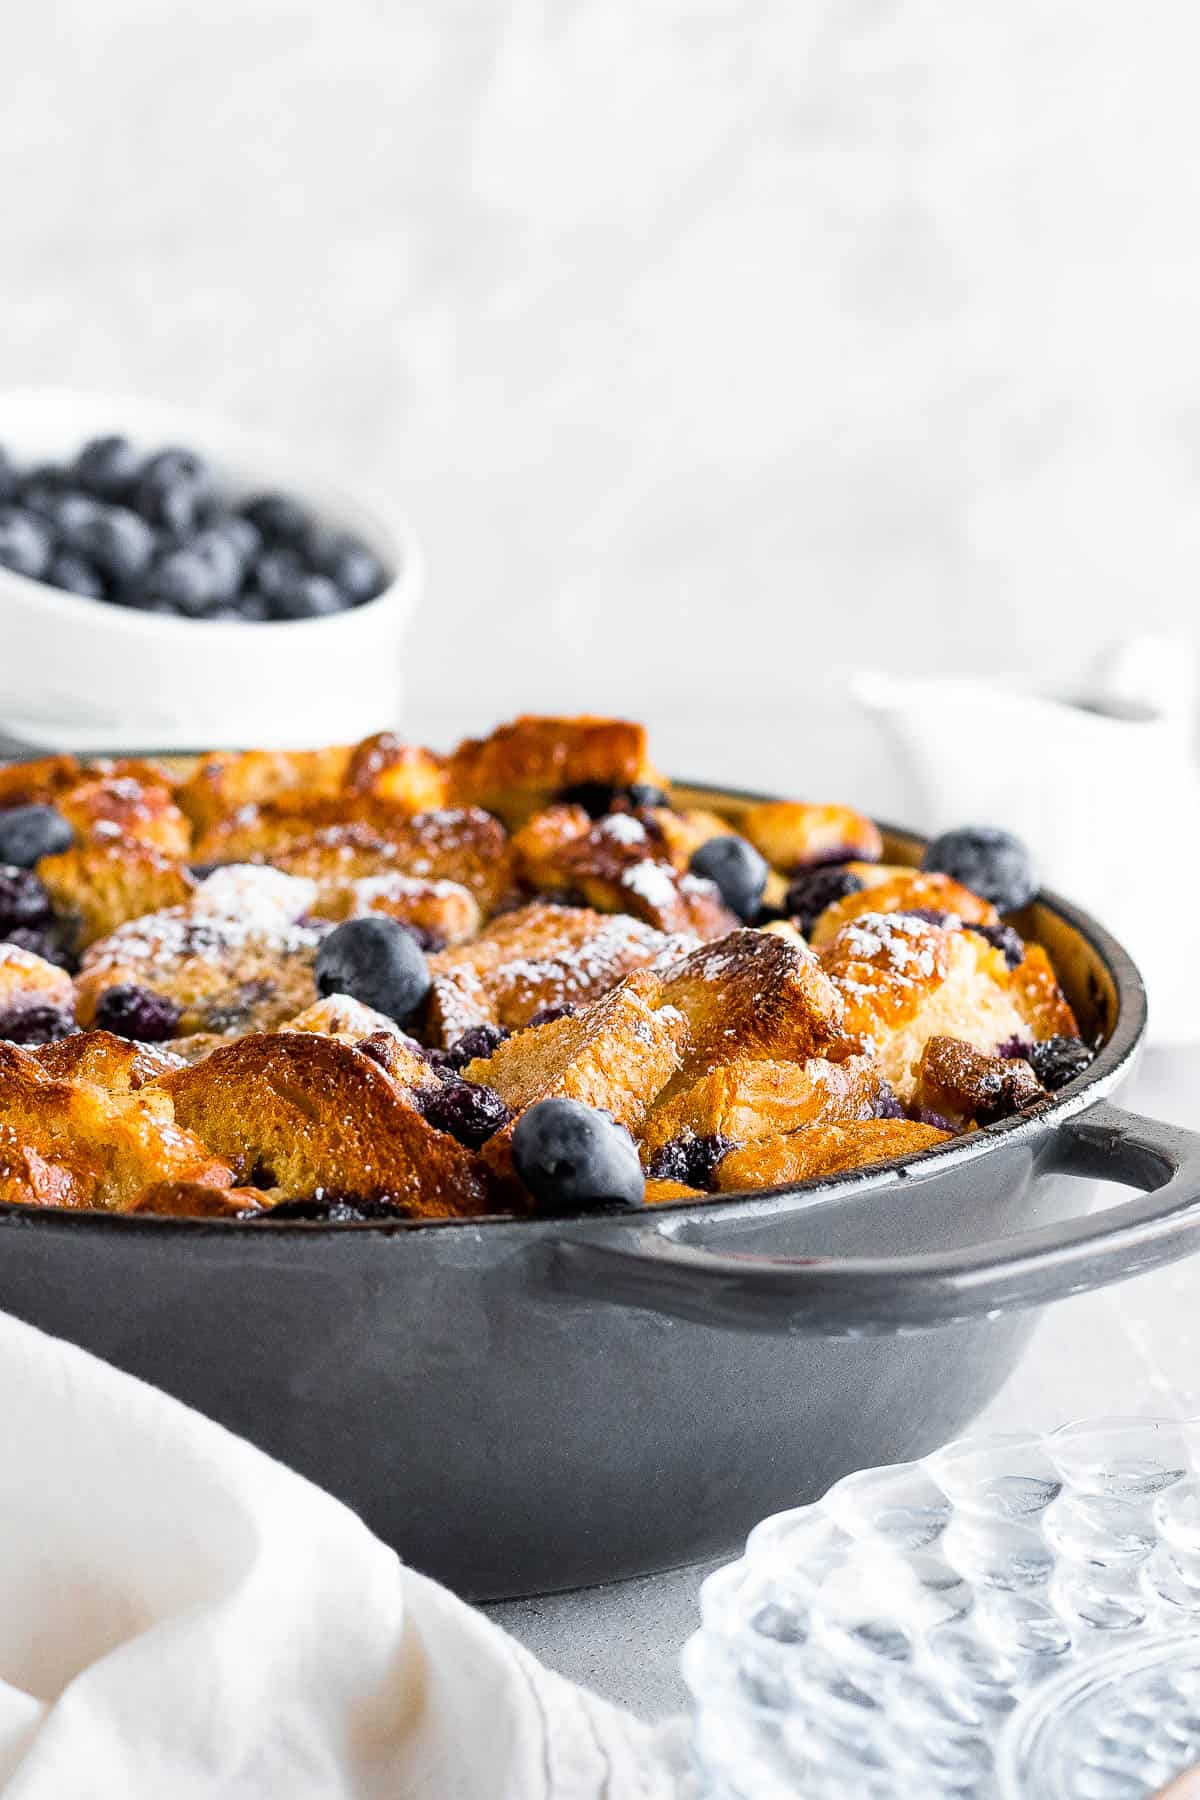 A Baked Blueberry French Toast Casserole in a Round Pan Topped with Powdered Sugar